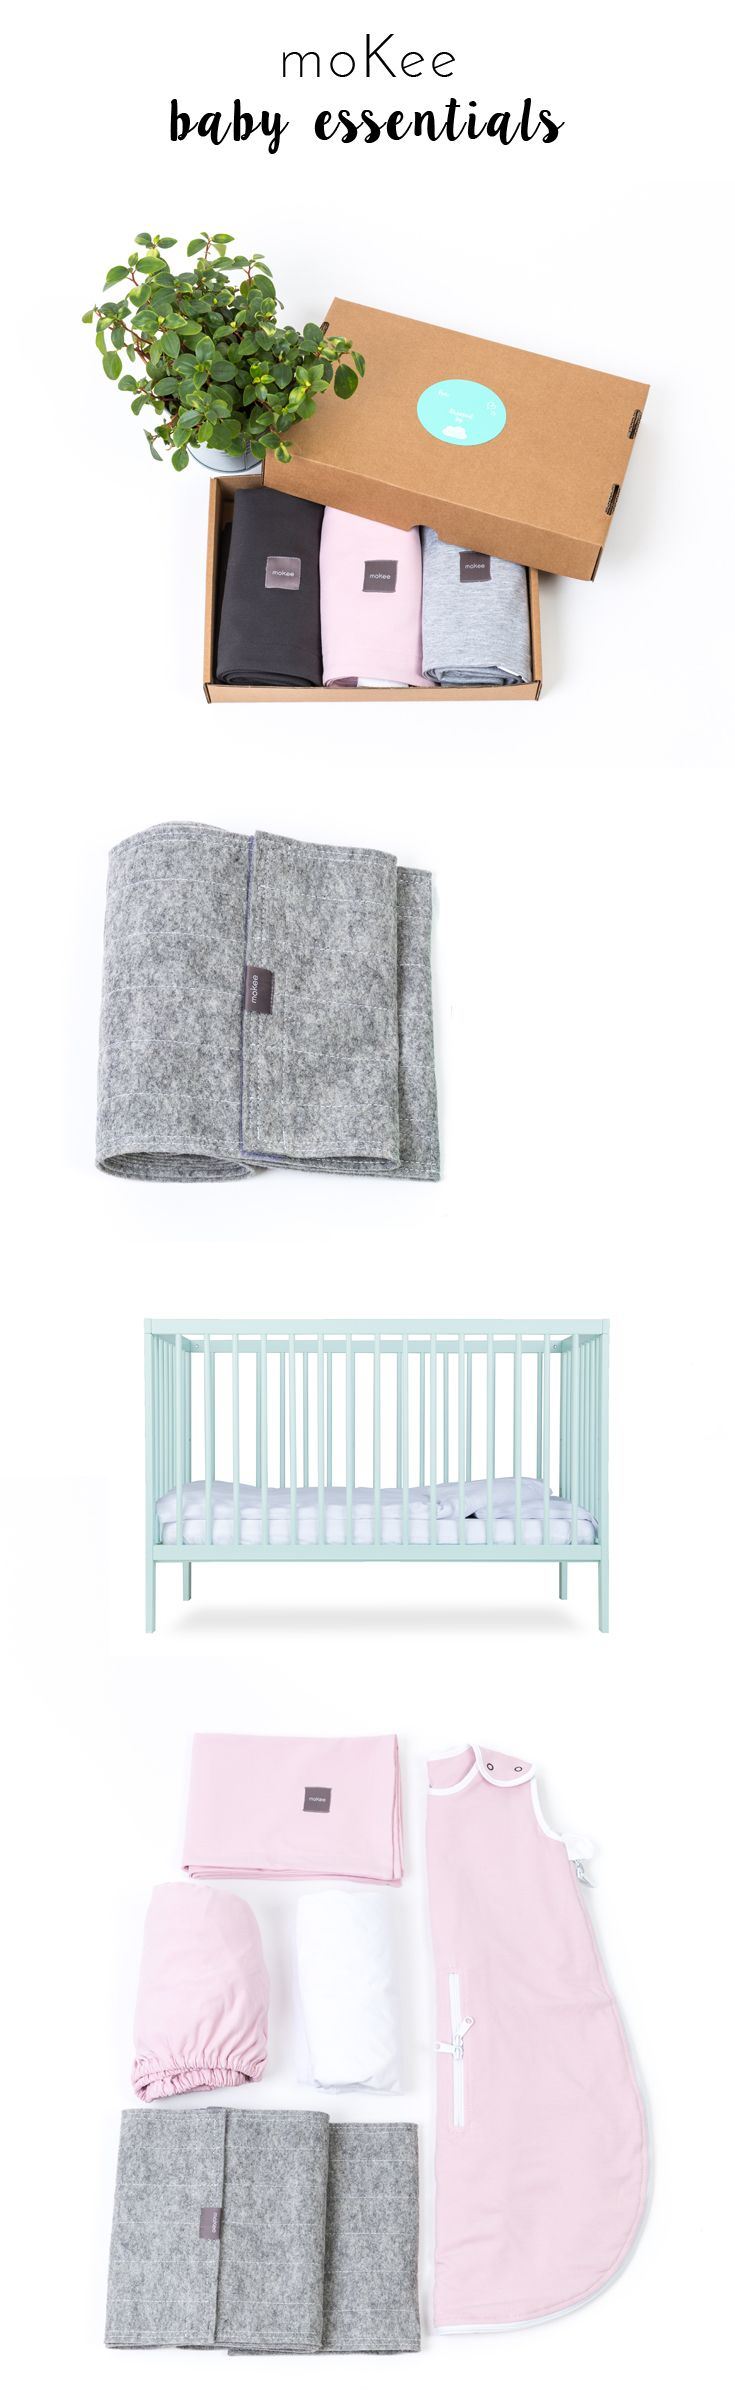 Making a Home for your Baby? All necessary products in one shop #babygear #babyessentials #bumper #cot #sleepingbag #mint #pink